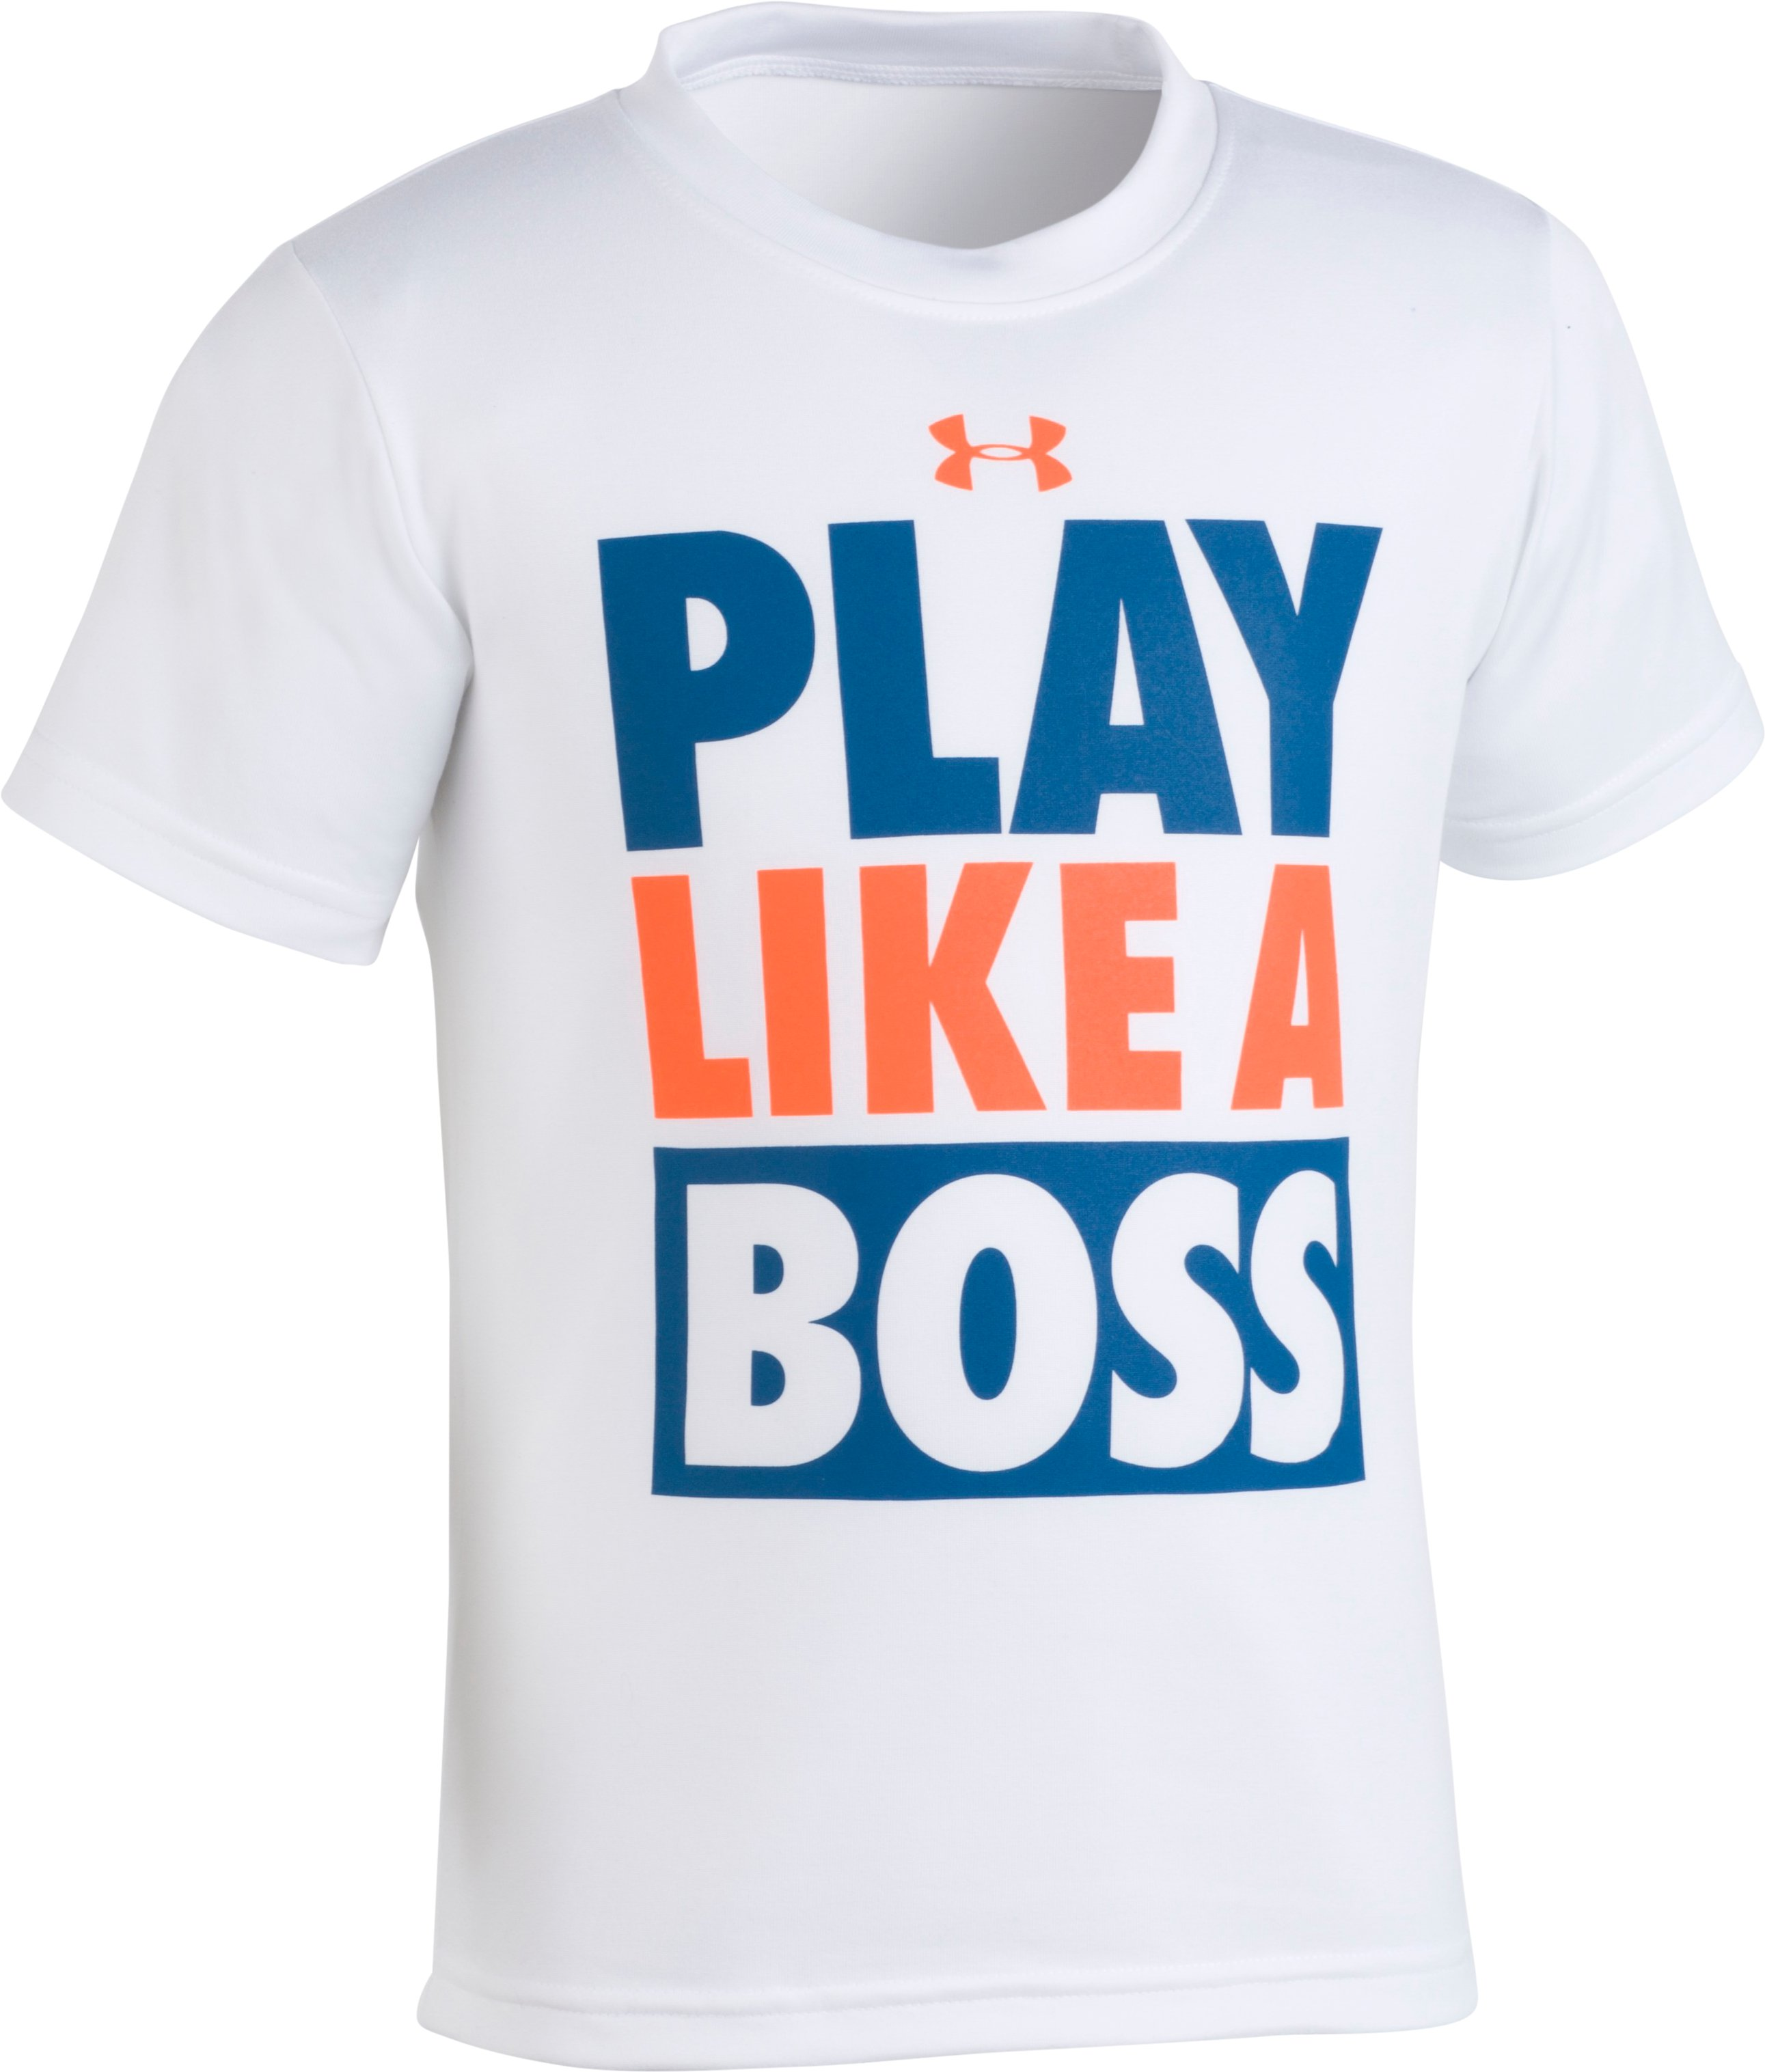 PLAY LIKE A BOSS SS 4-7, White, zoomed